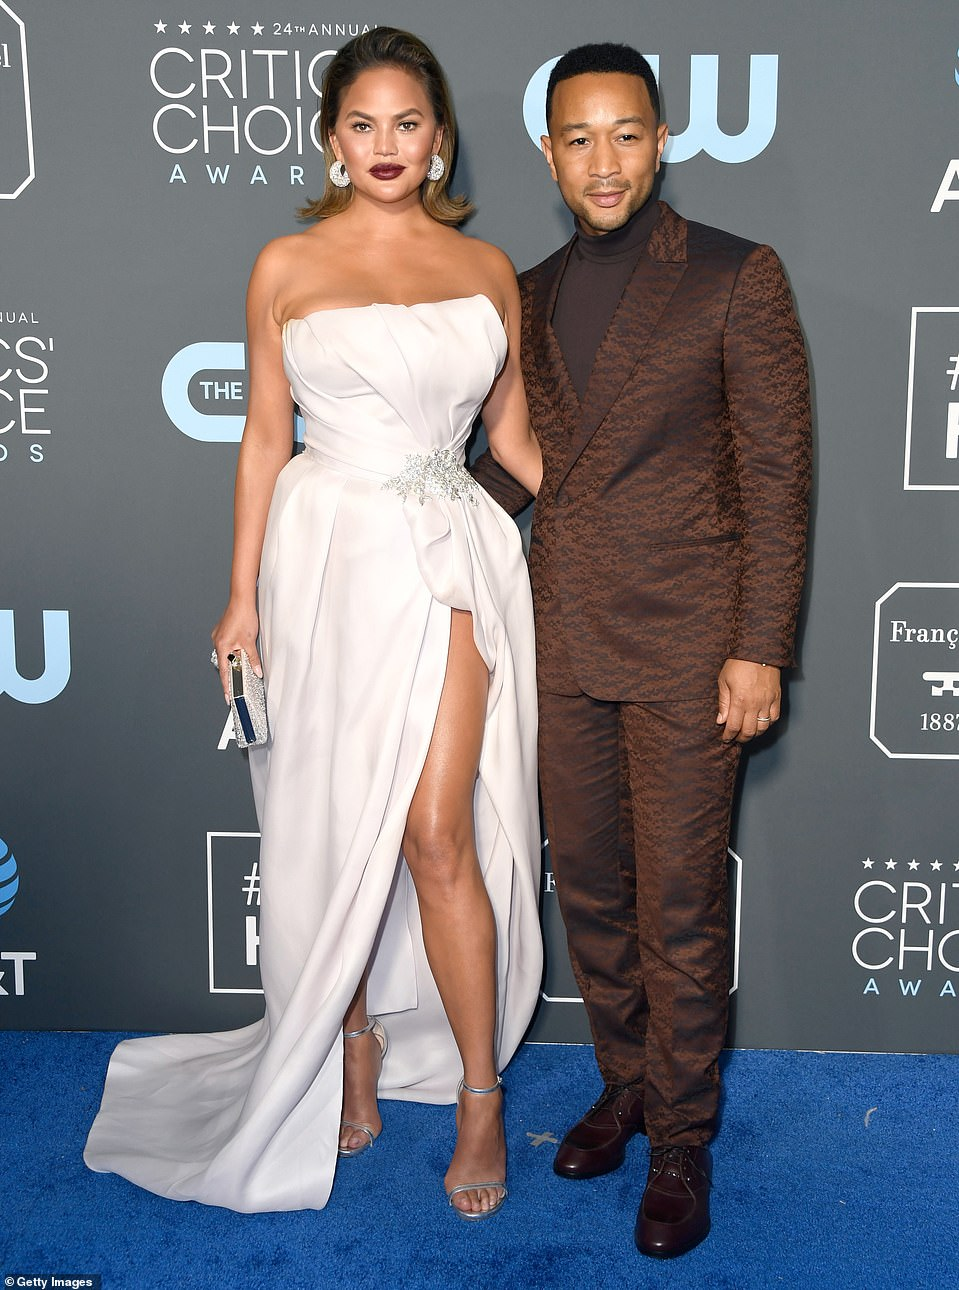 Chrissy Teigen wears strapless satin to the 2019 Critics' Choice Award